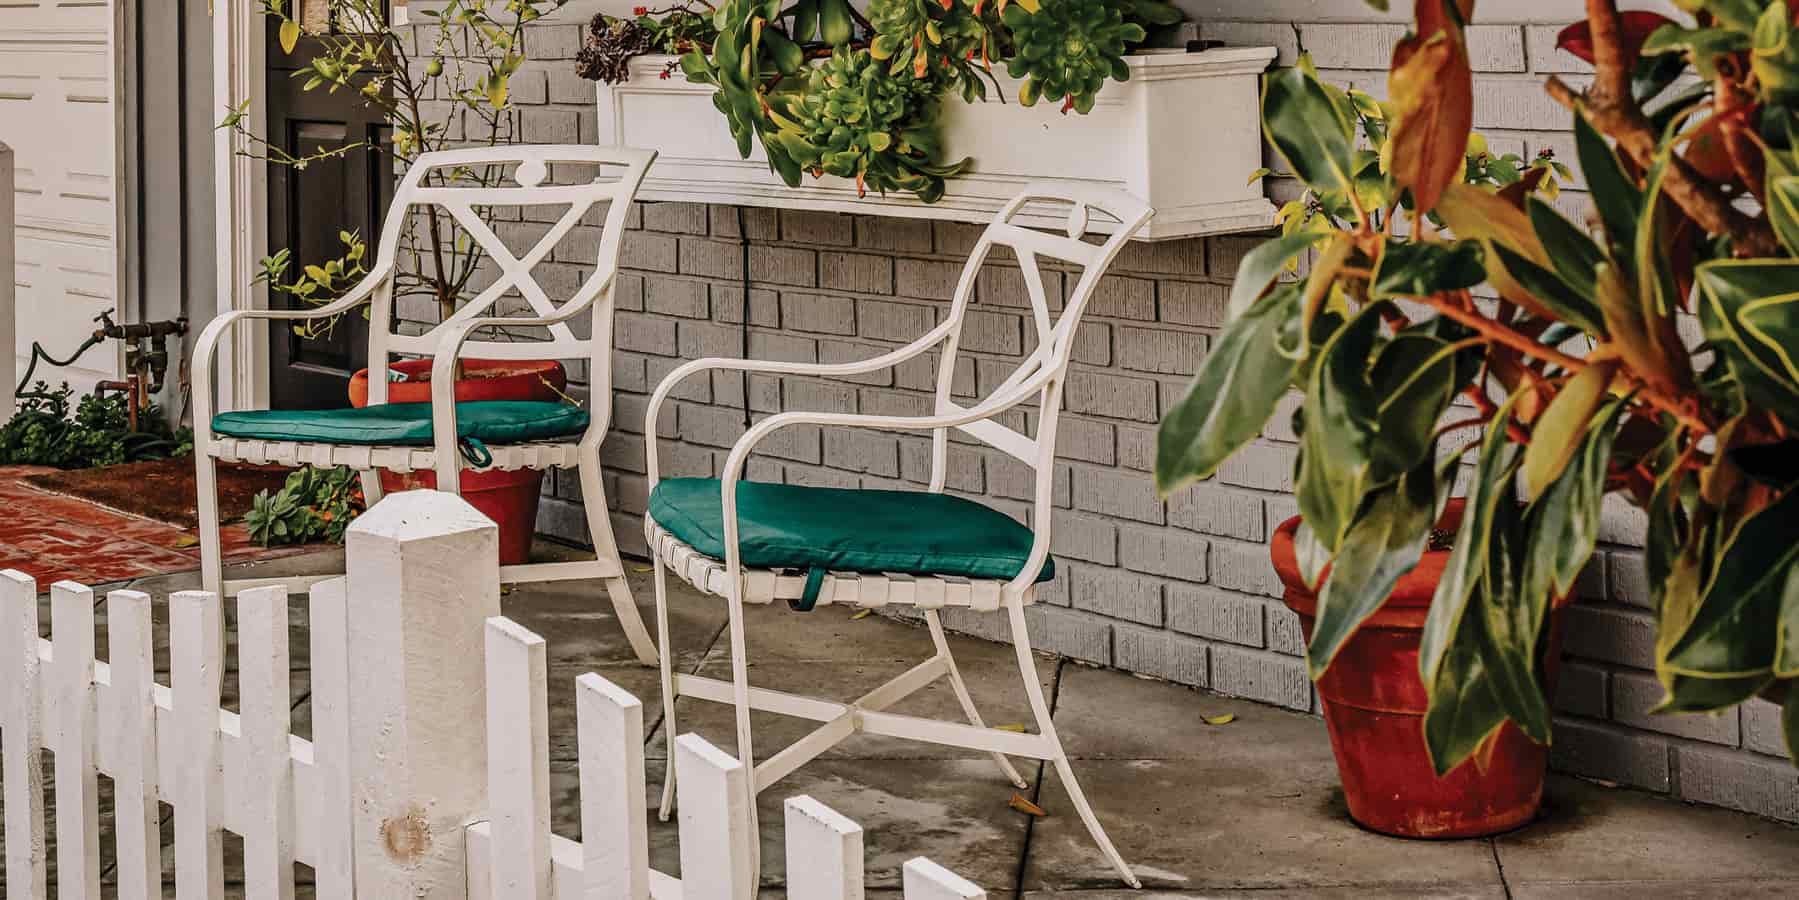 Two white chairs on a patio area with white fence around the porch.